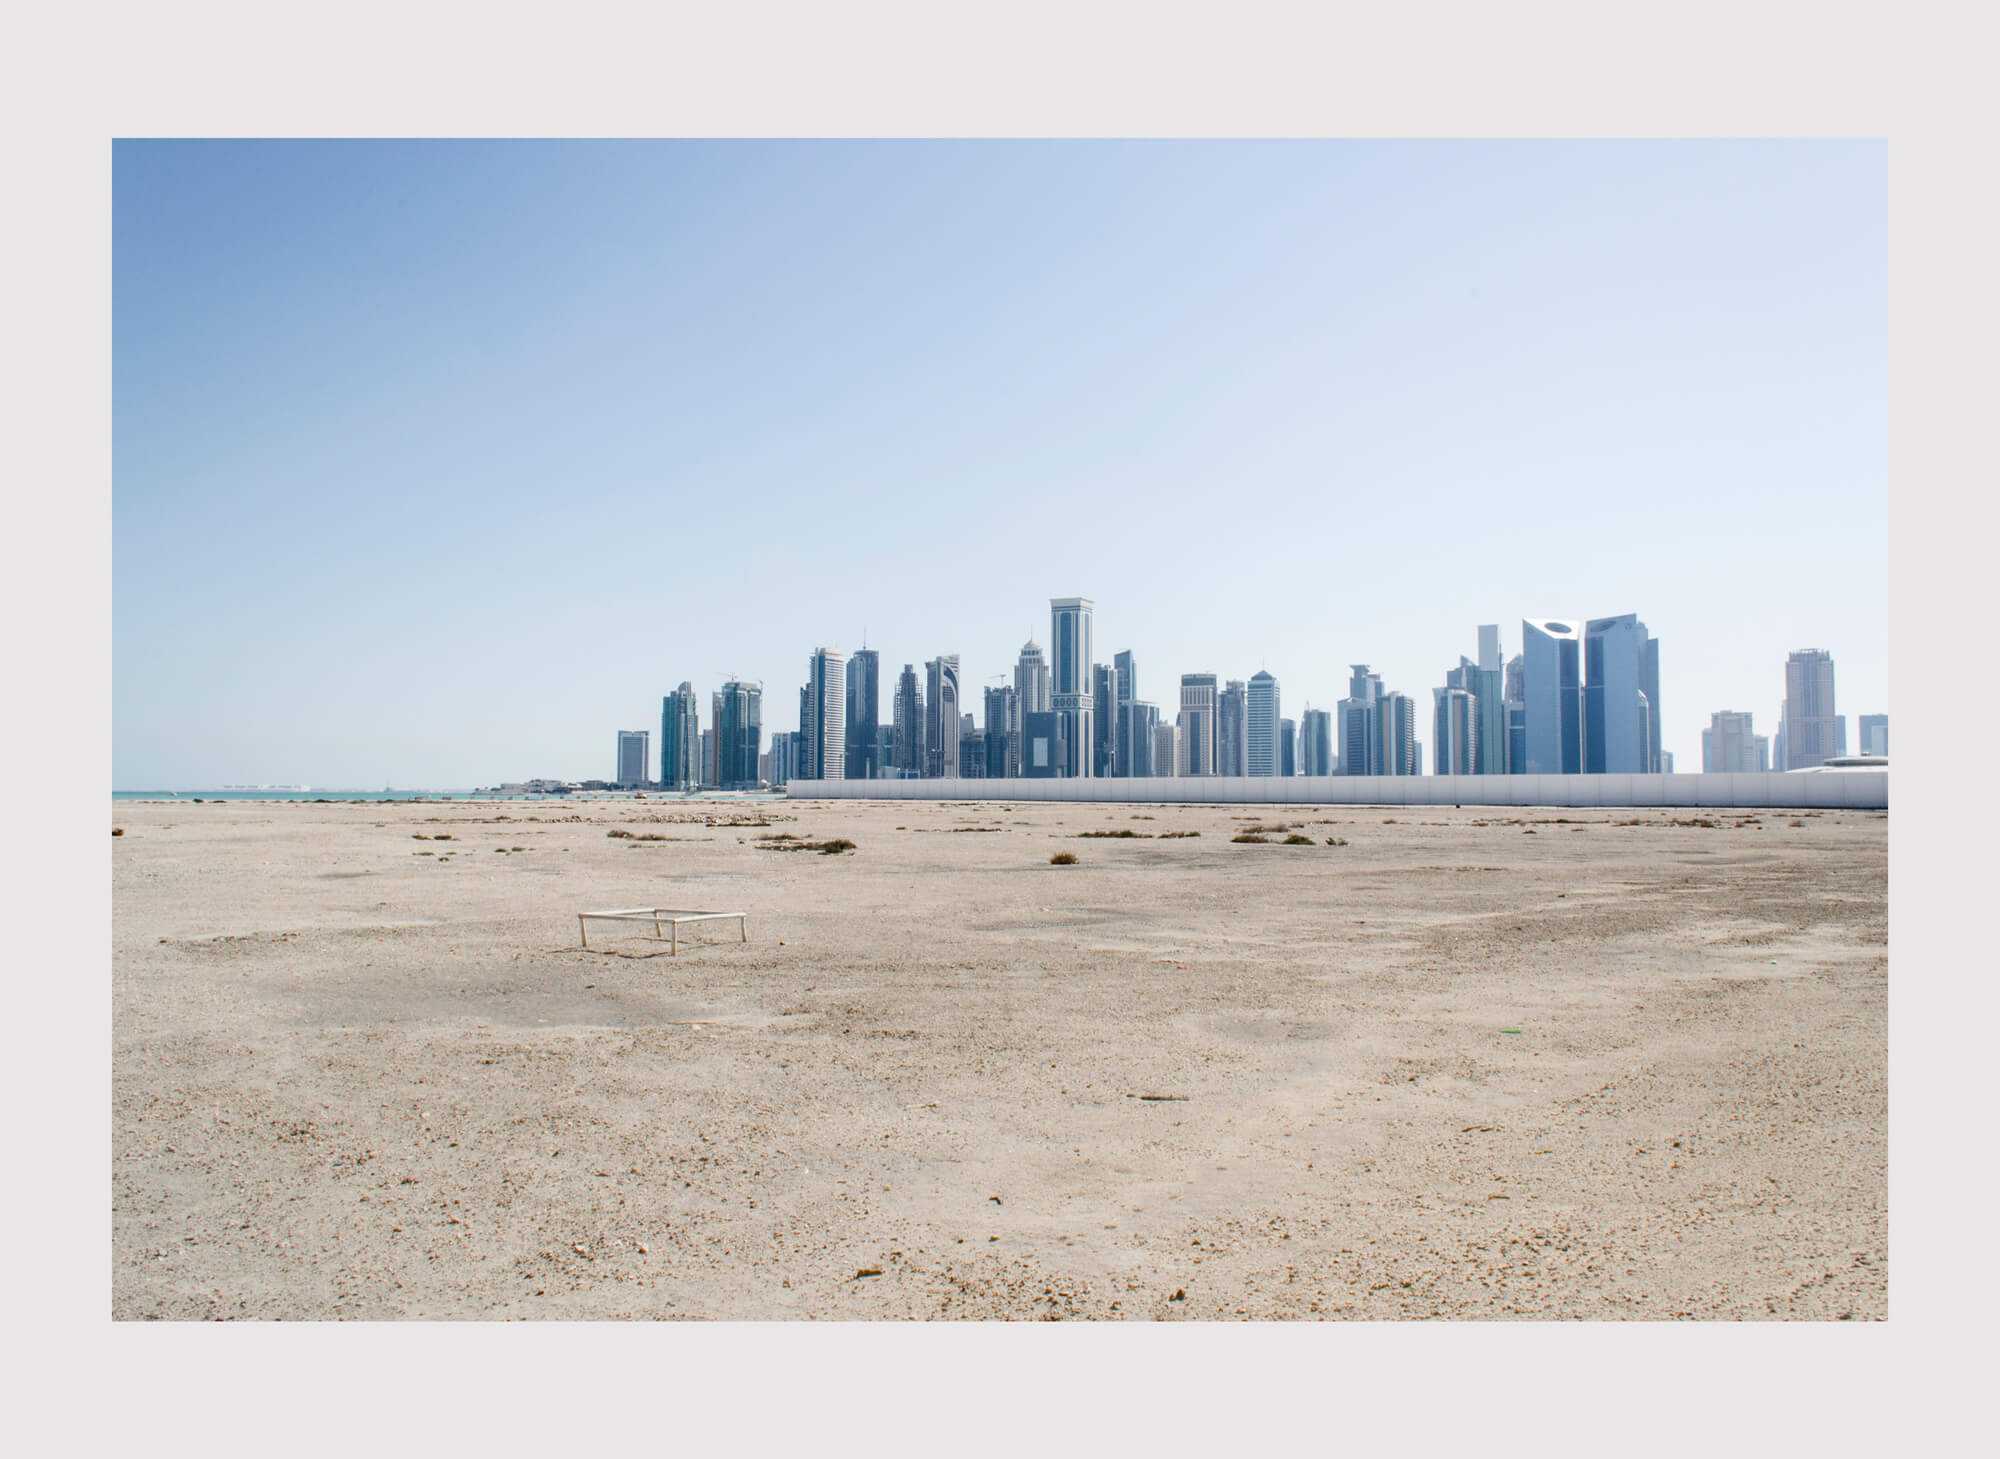 Ethan Beswick Mirari the city of Dubai south west collective